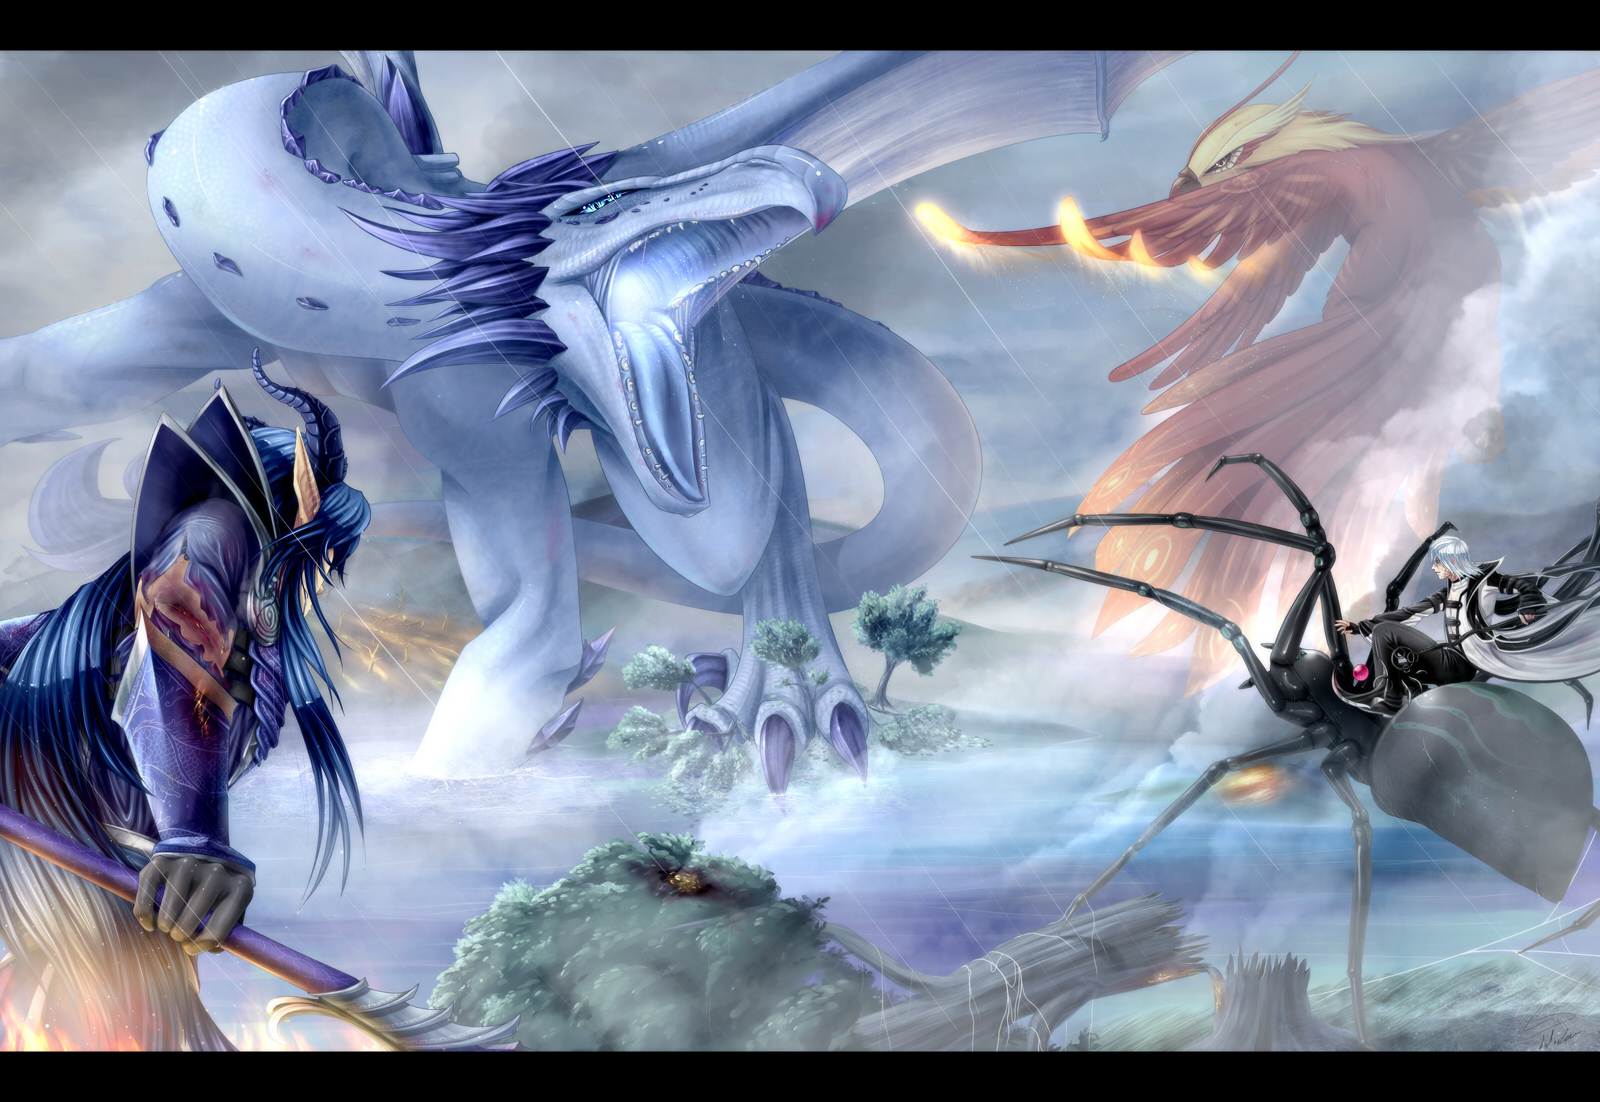 SoC: Against Fire and Ice by Dx33x